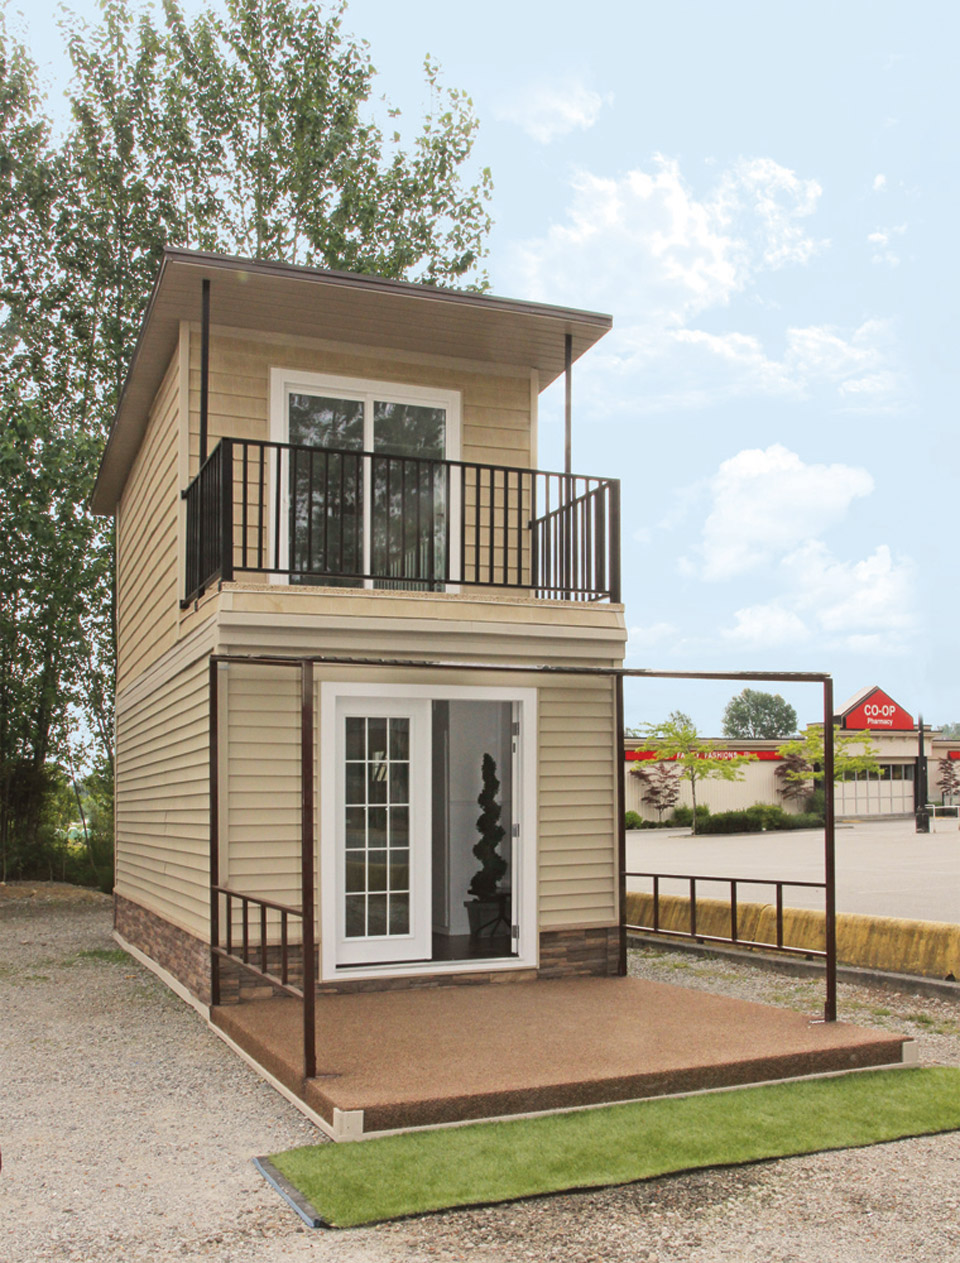 The eagle 1 a 350 sq ft 2 story steel framed micro home for Small two story homes